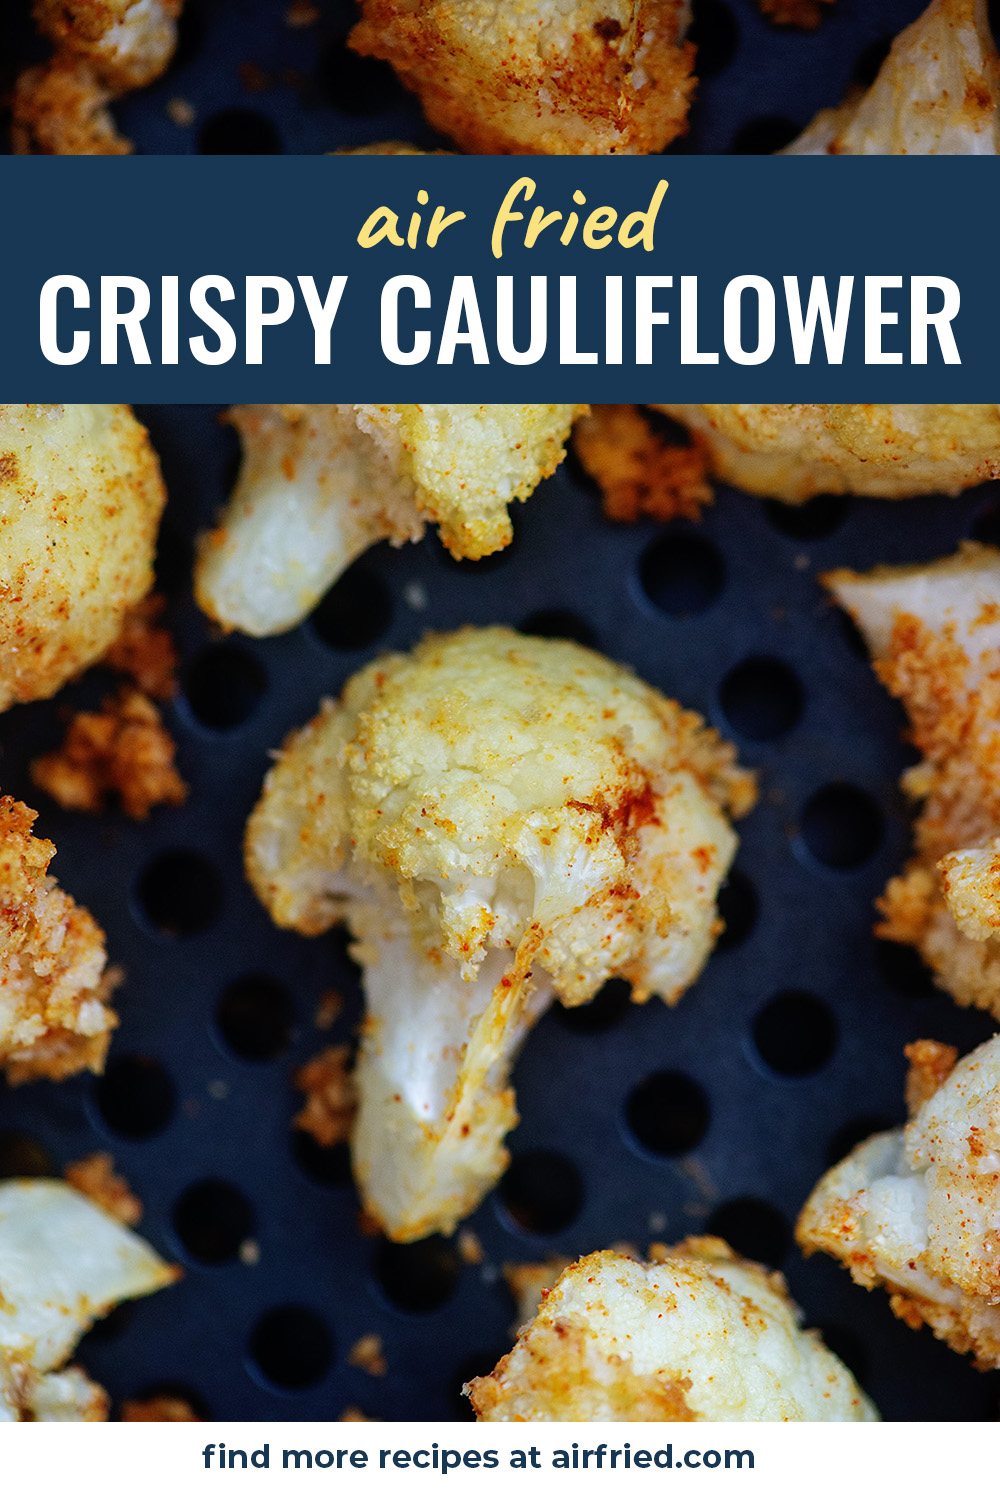 These breaded cauliflowers have a lightly crispy outside and wonderful garlic flavor! #recipes #airfried #cauliflower